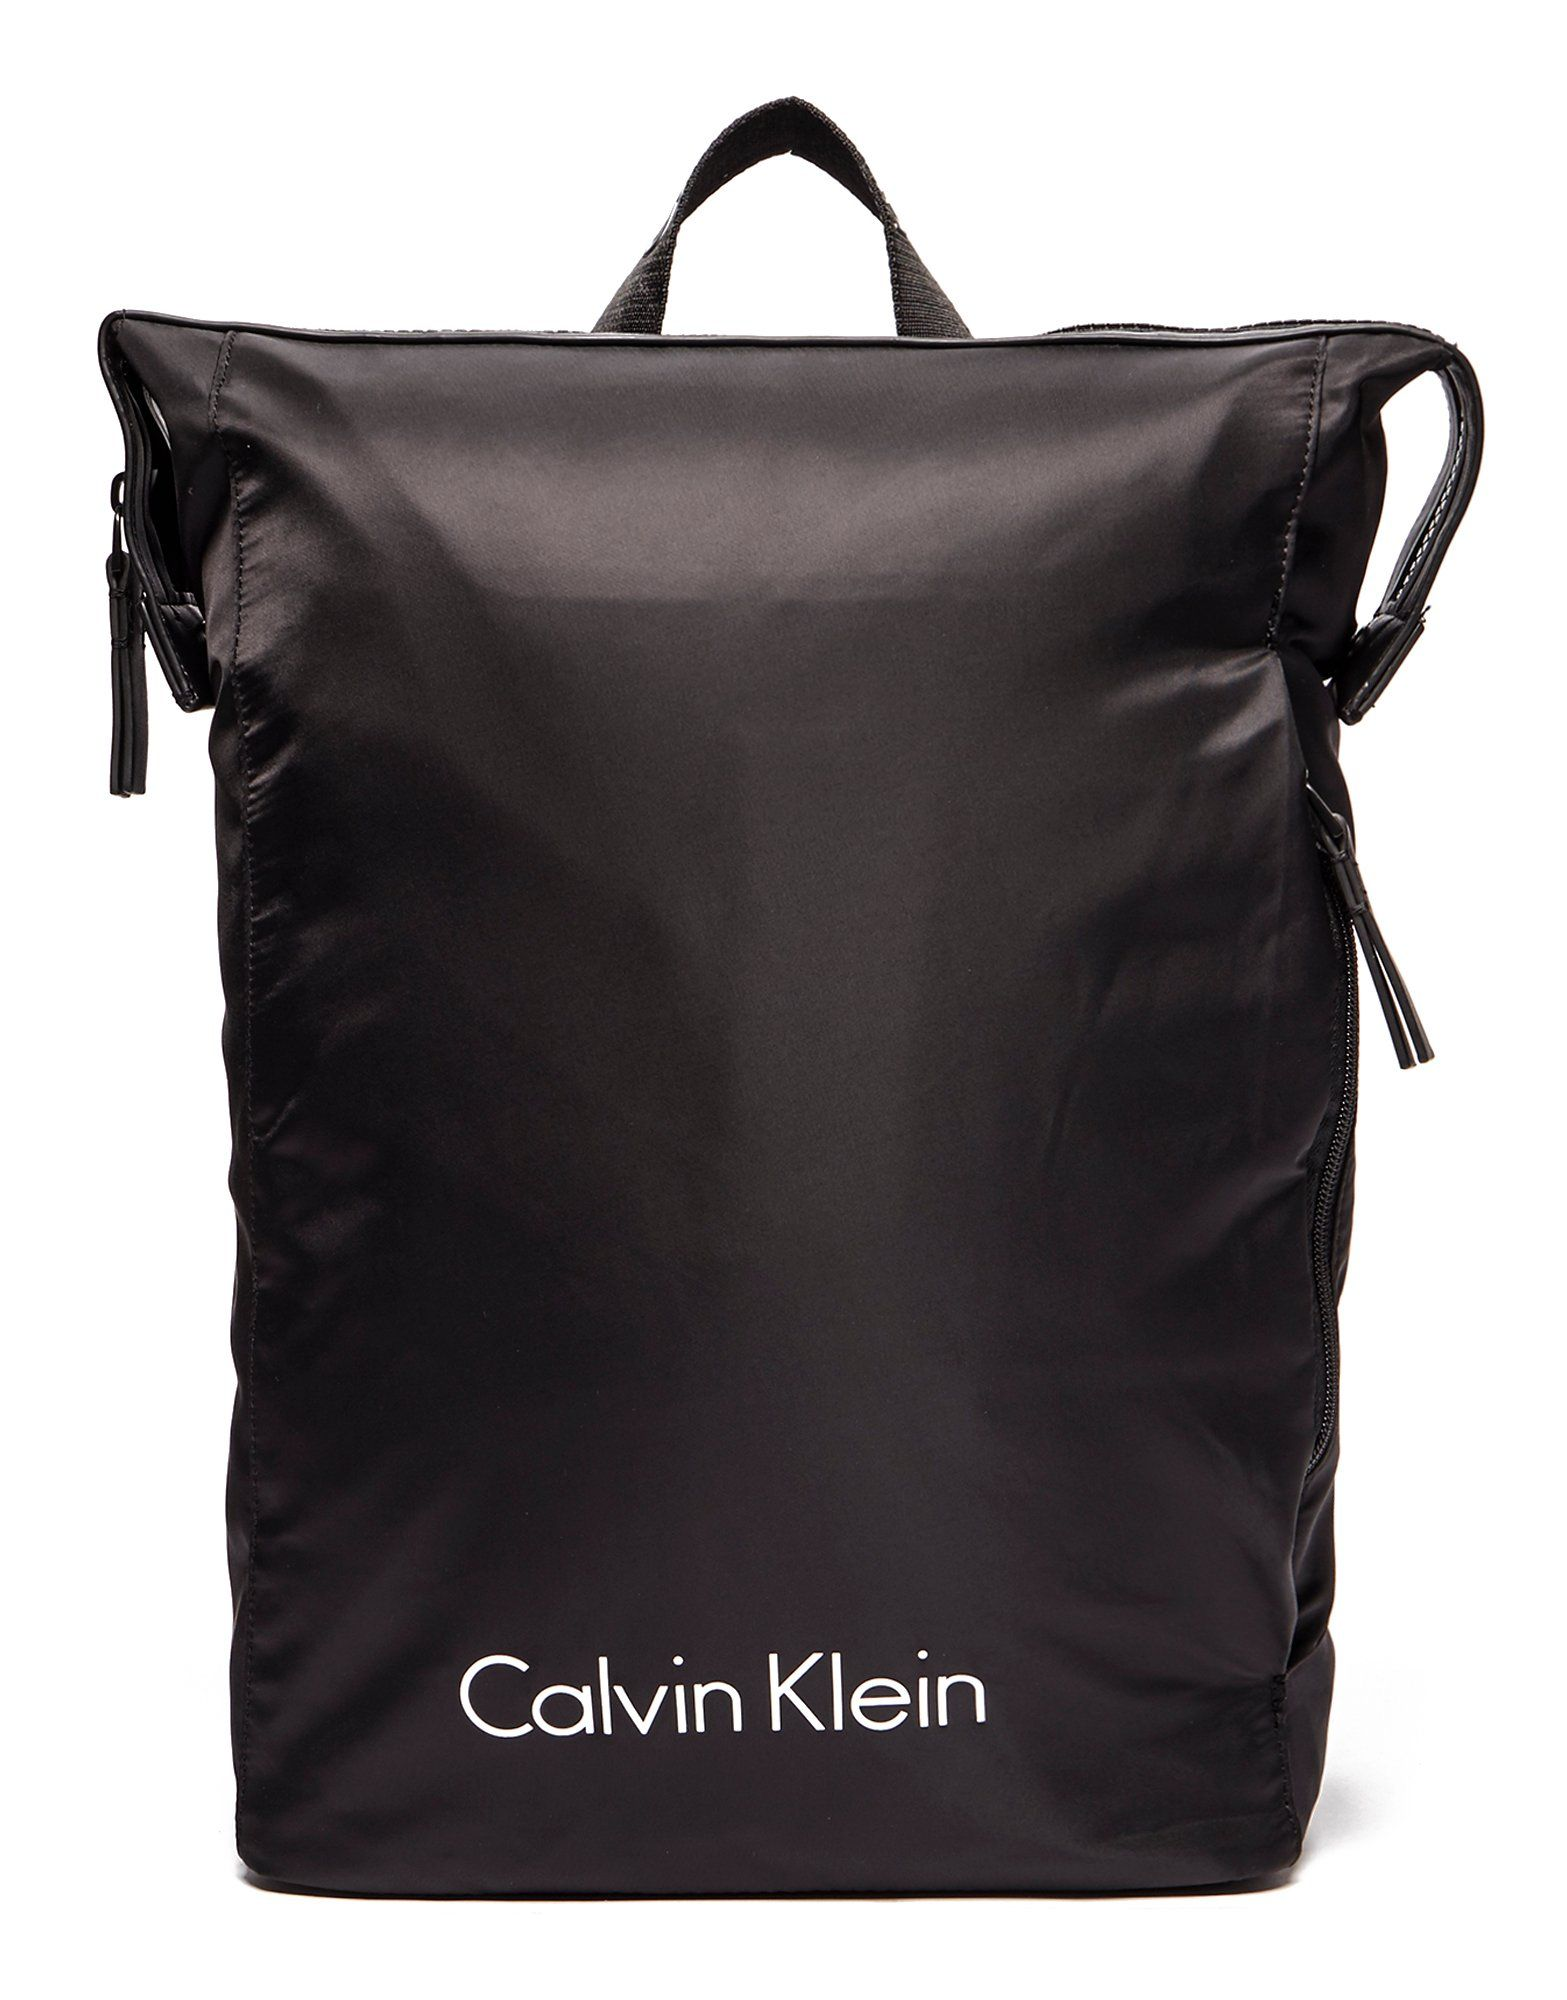 Men - Bags   Gymsacks Calvin Klein   JD Sports 2fe4583ca3